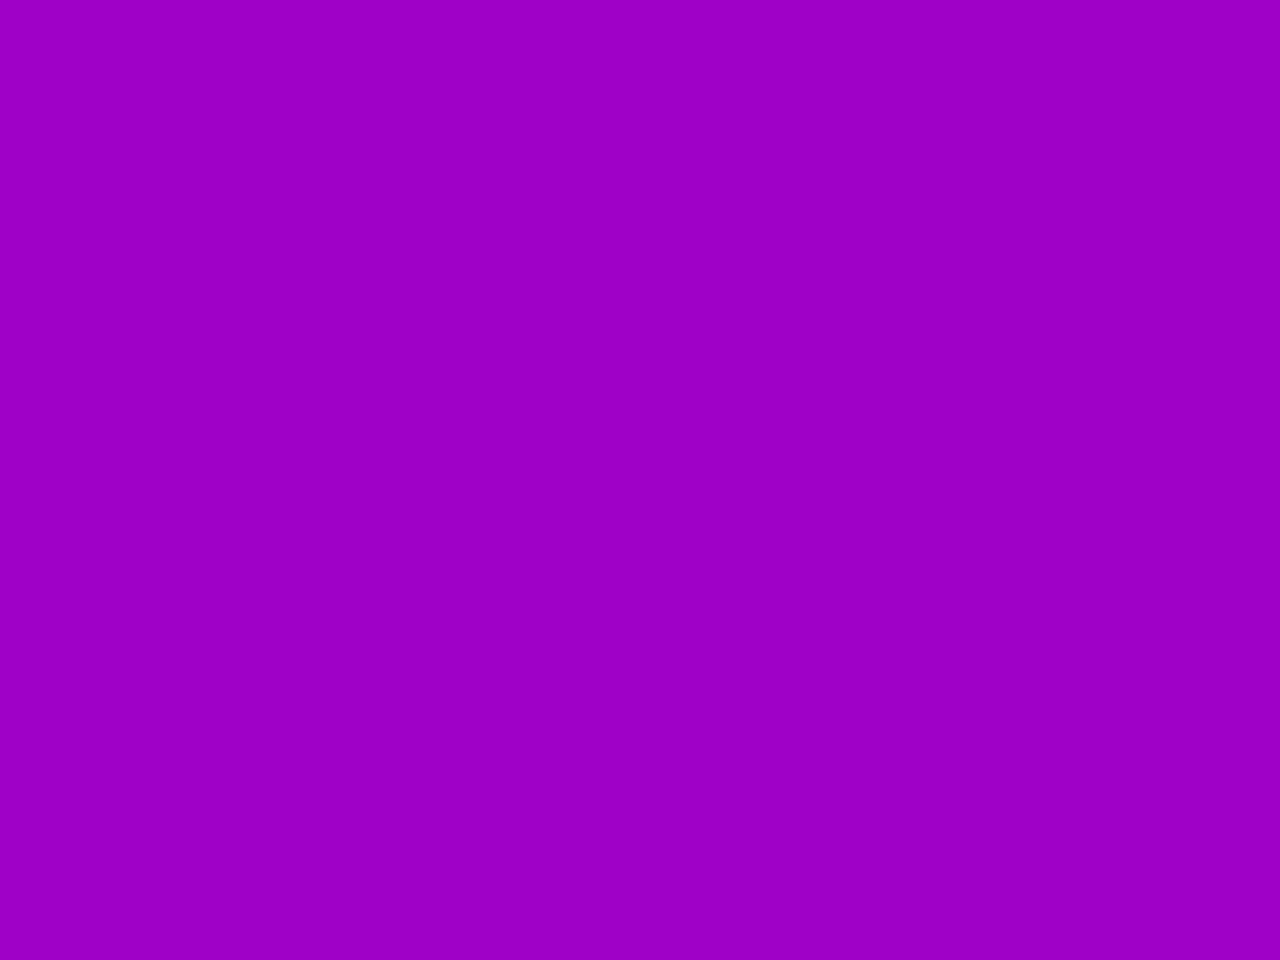 1280x960 Purple Munsell Solid Color Background